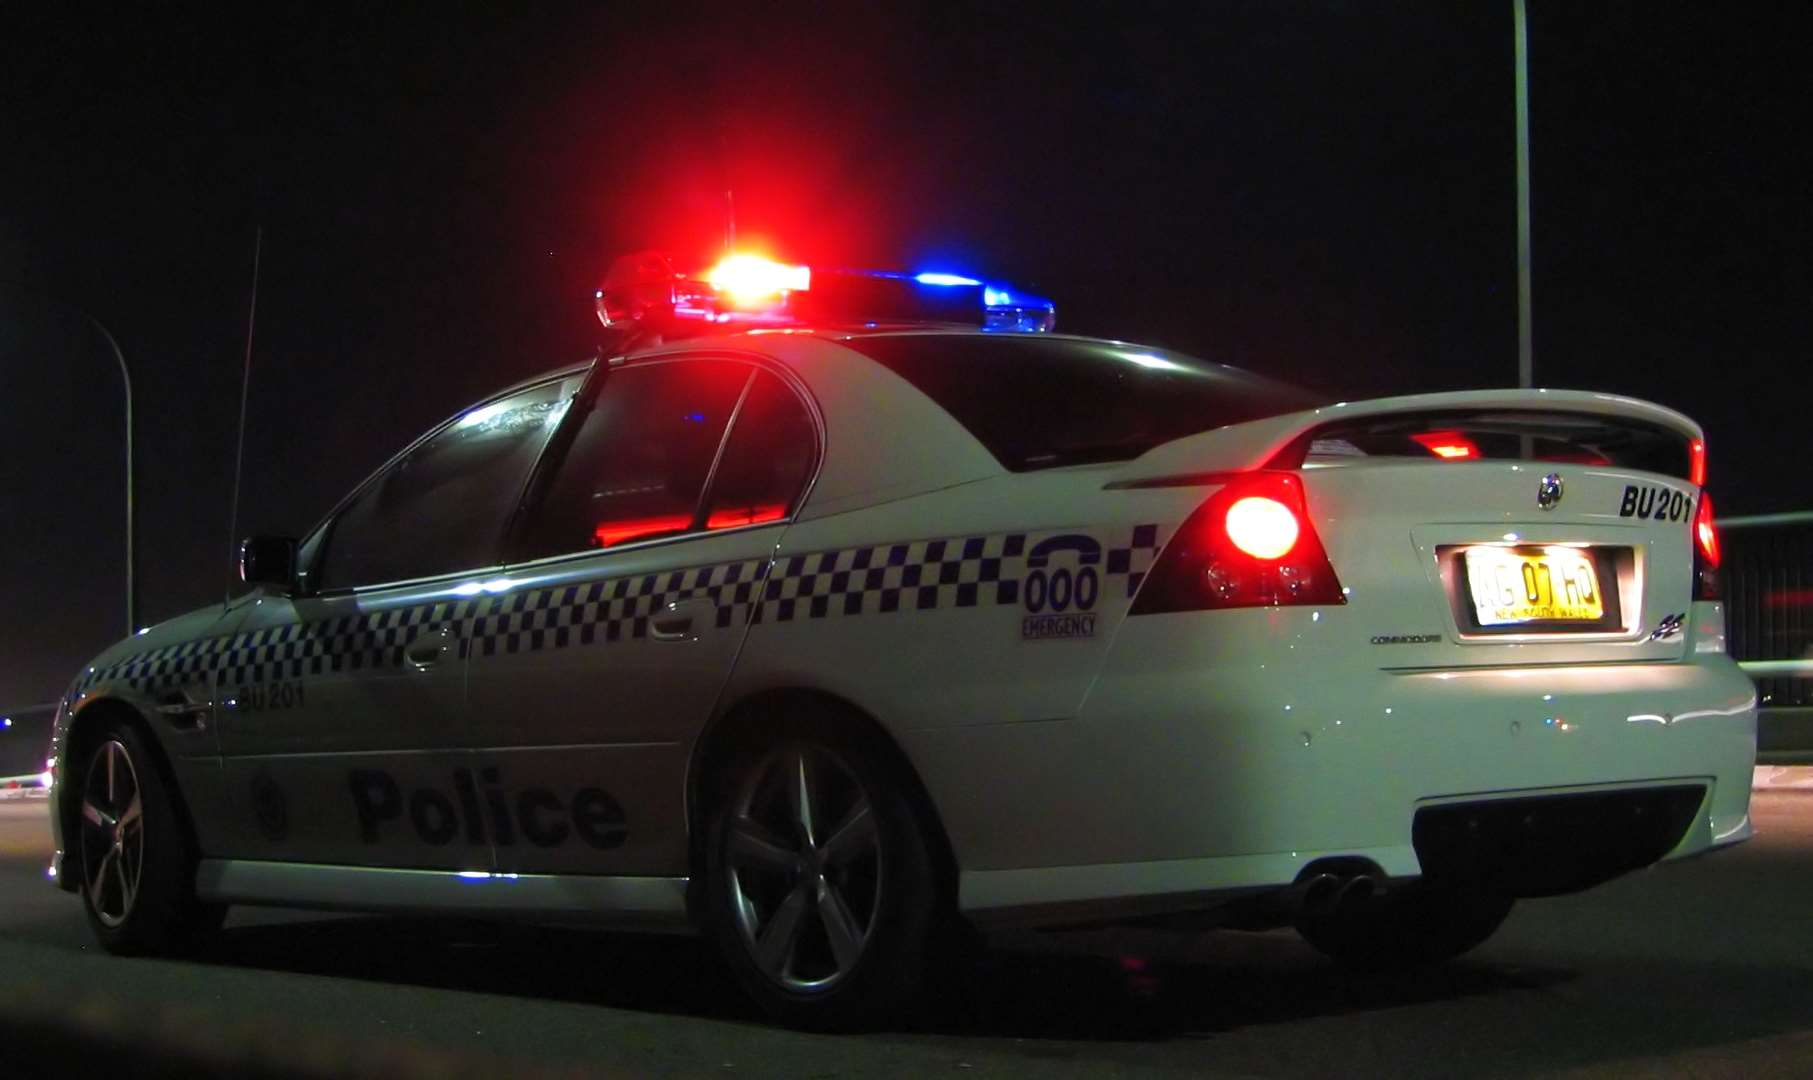 NSW Police plans major SAP upgrade - Finance - Strategy - Software